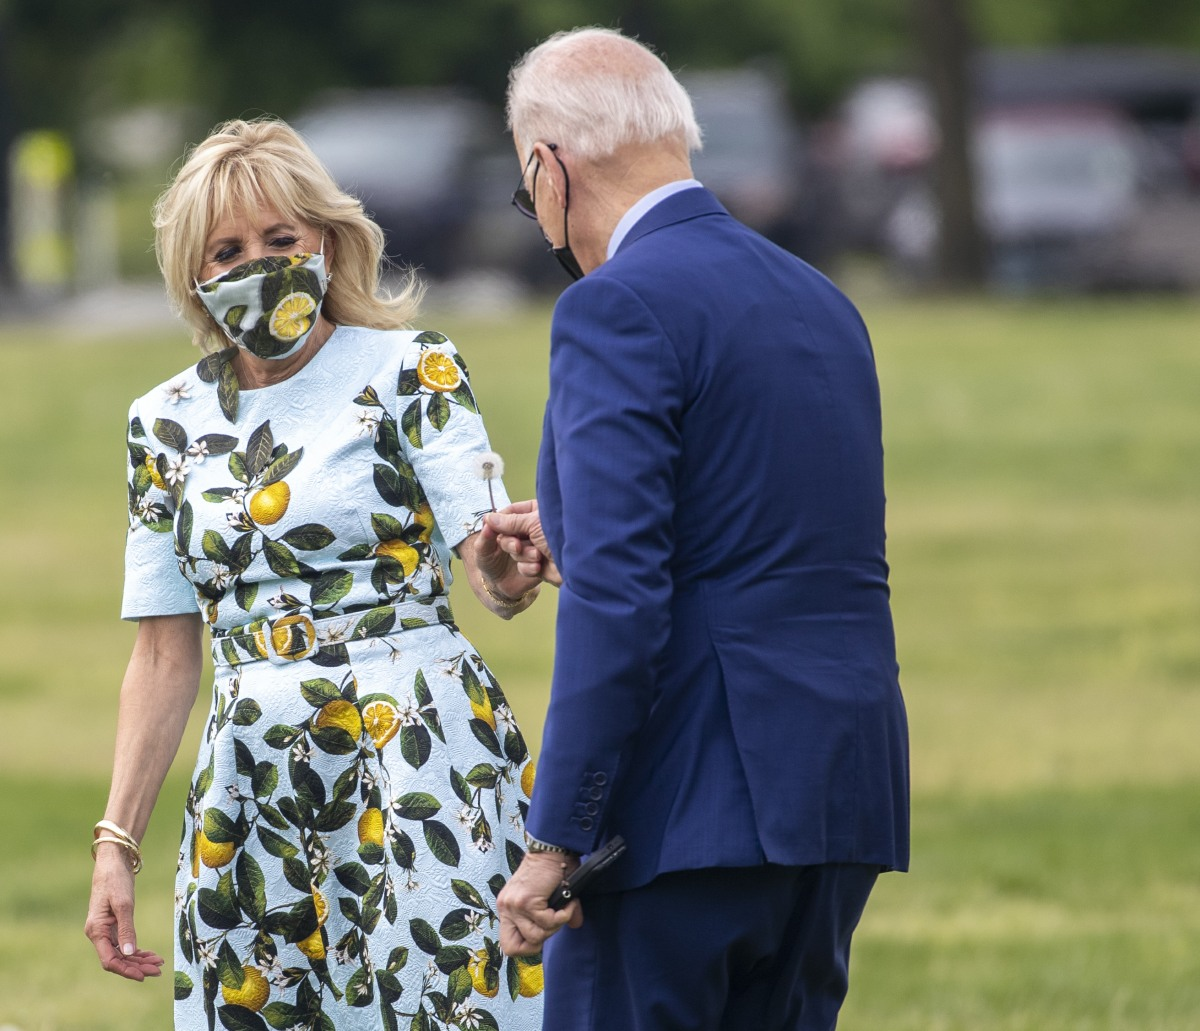 US President Joe Biden travels to Georgia for an event to mark his 100th day in office